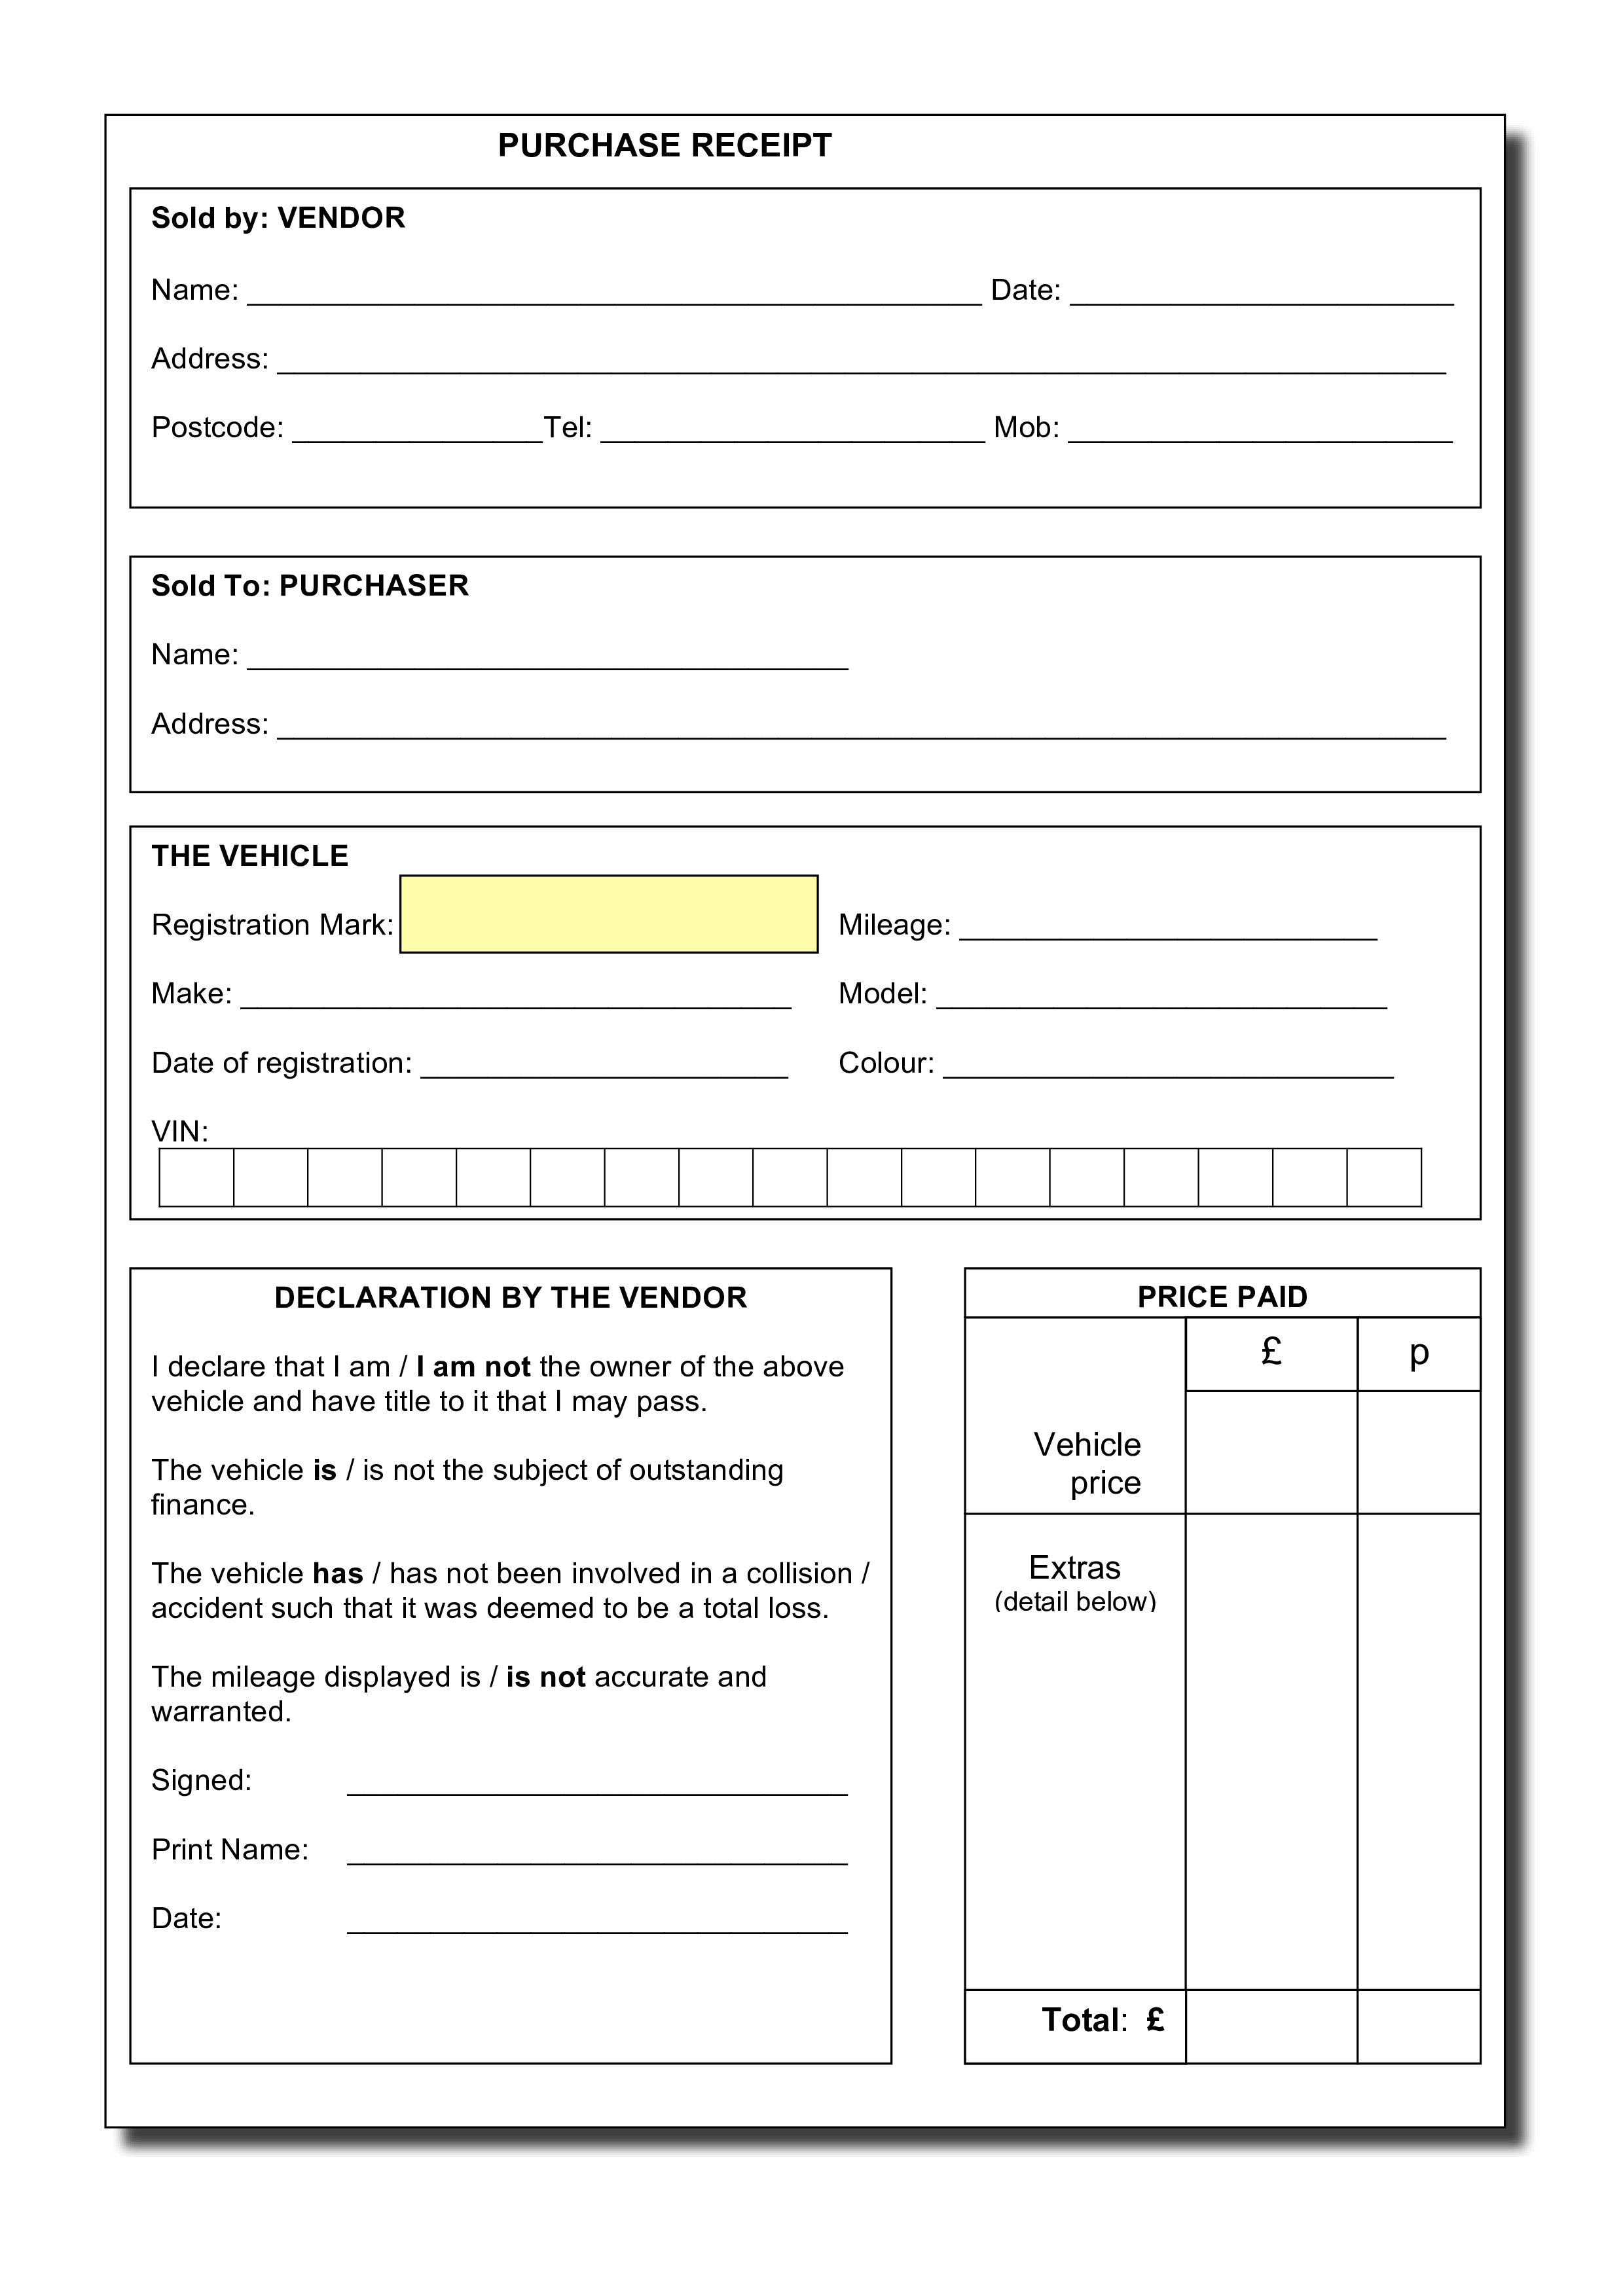 Microsoft Word - Purchase_Receipt.Doc - | templates | Pinterest ...